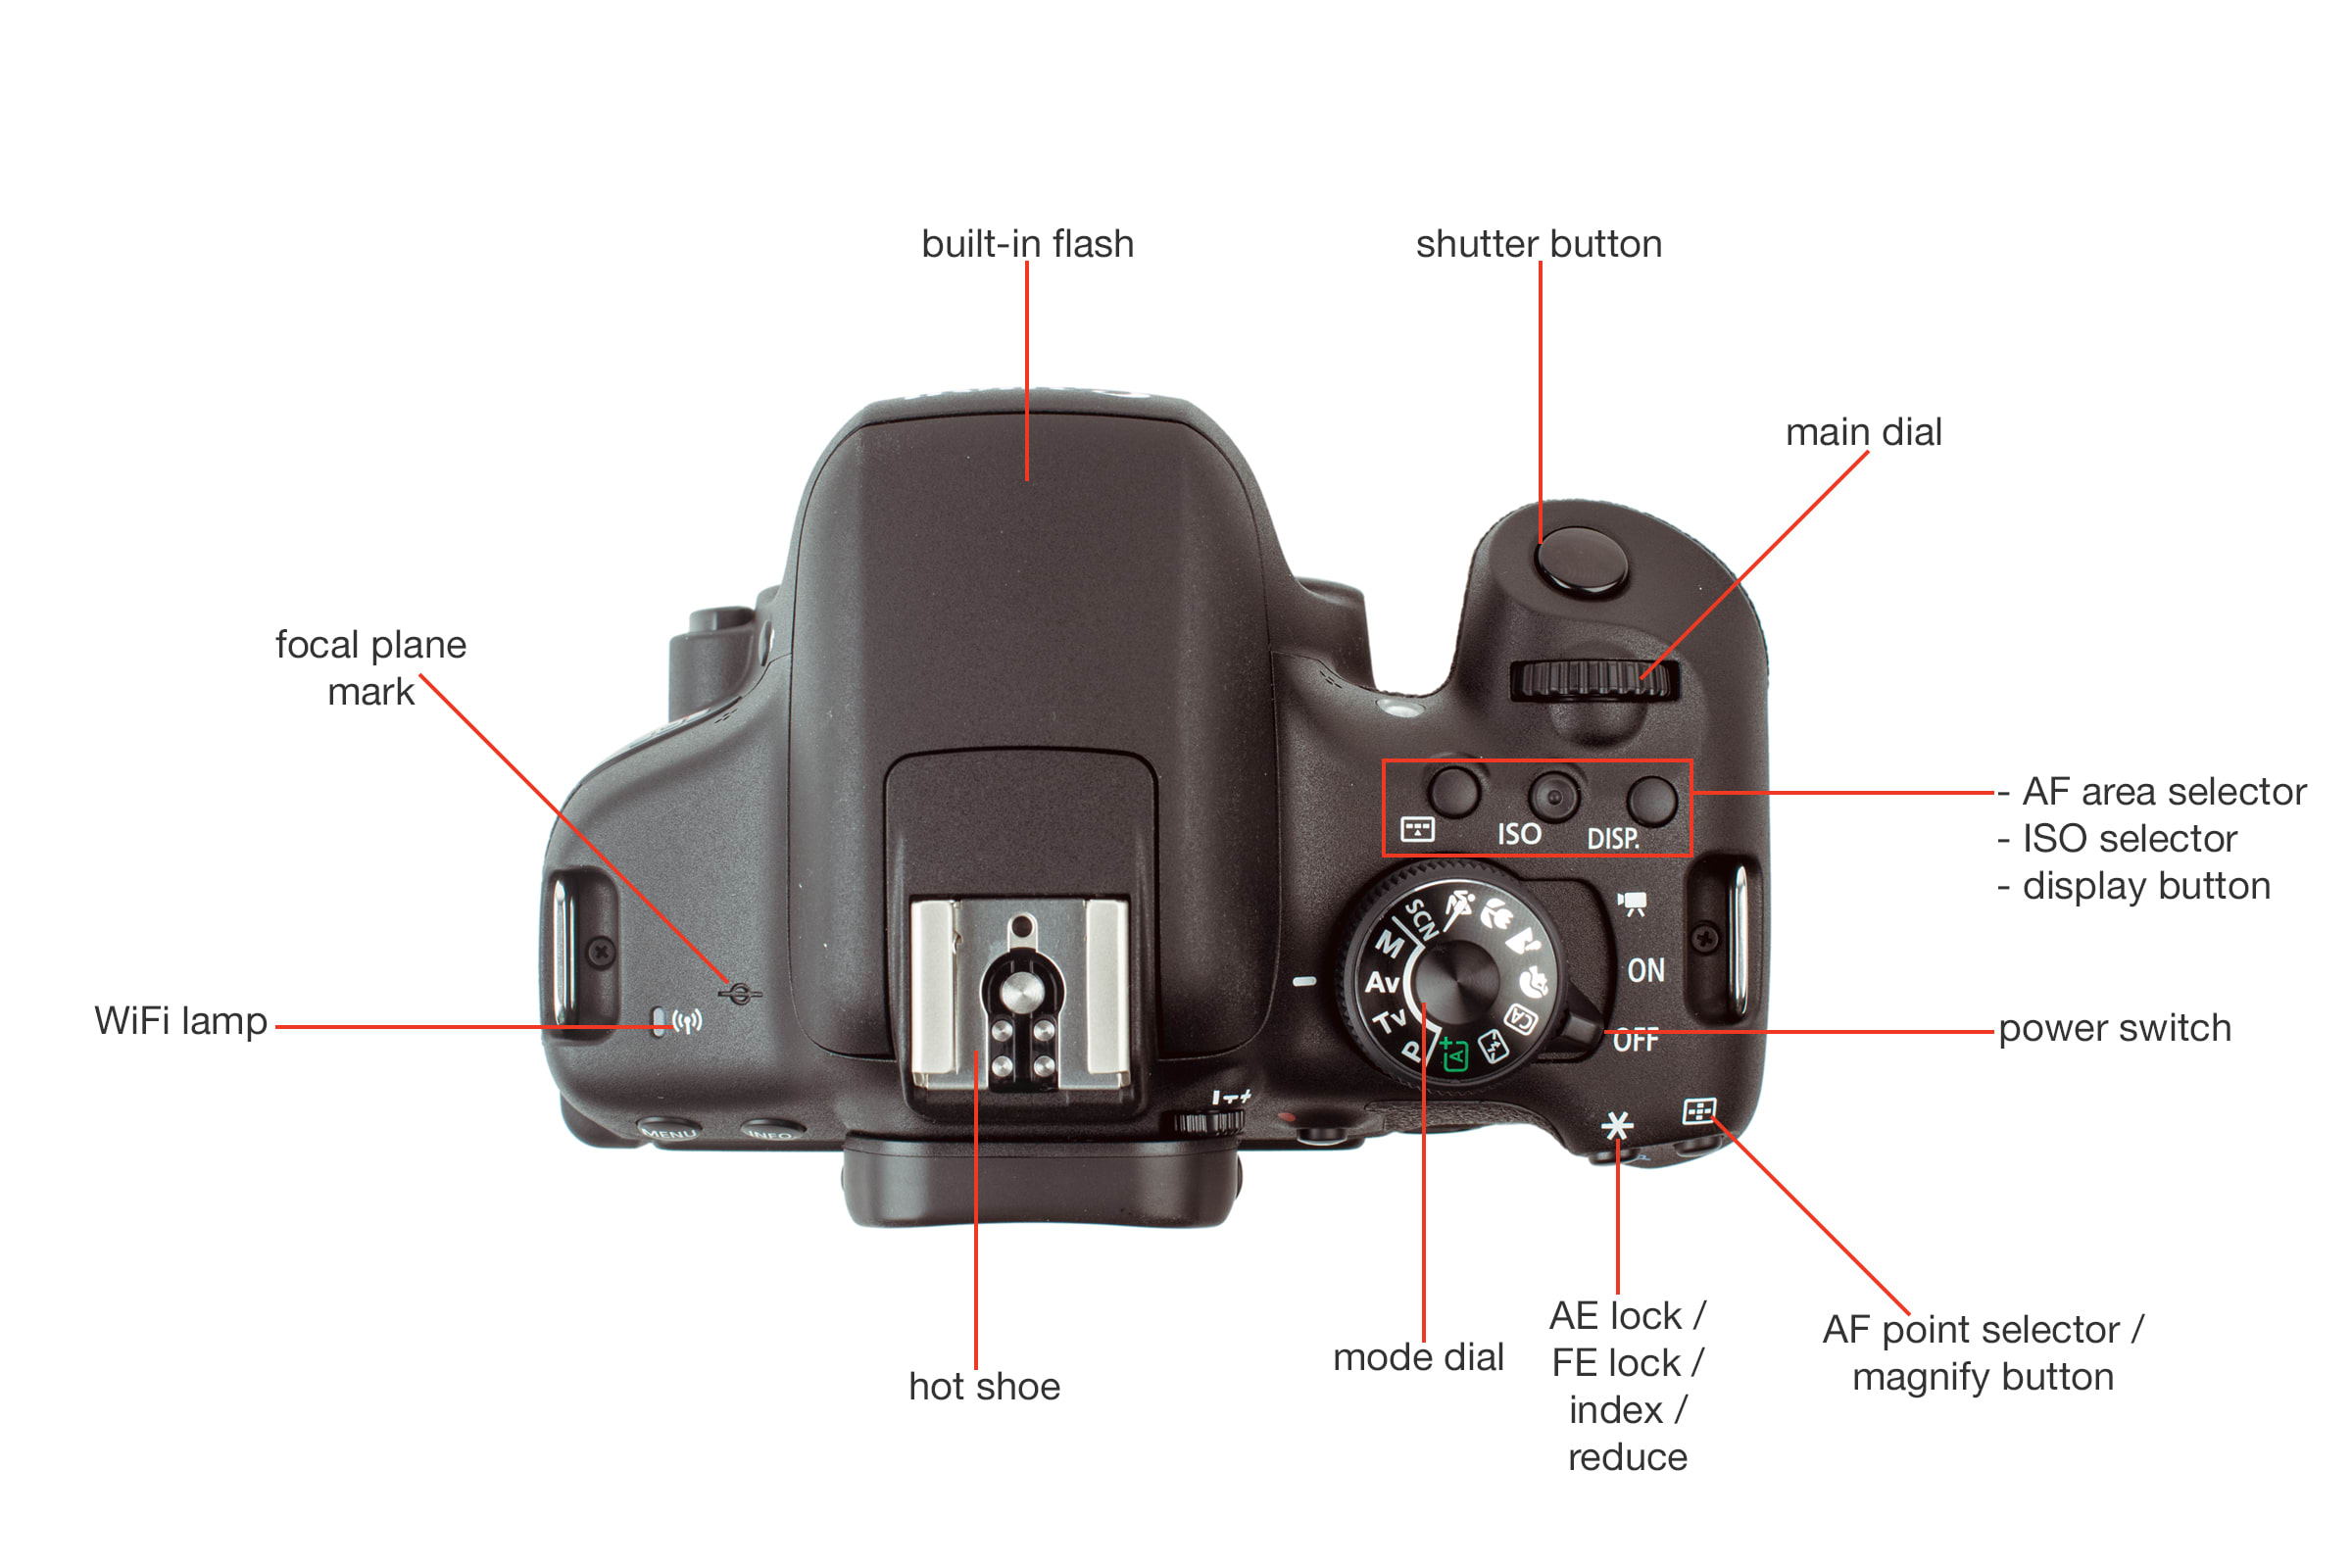 Top view of the Canon T6i.